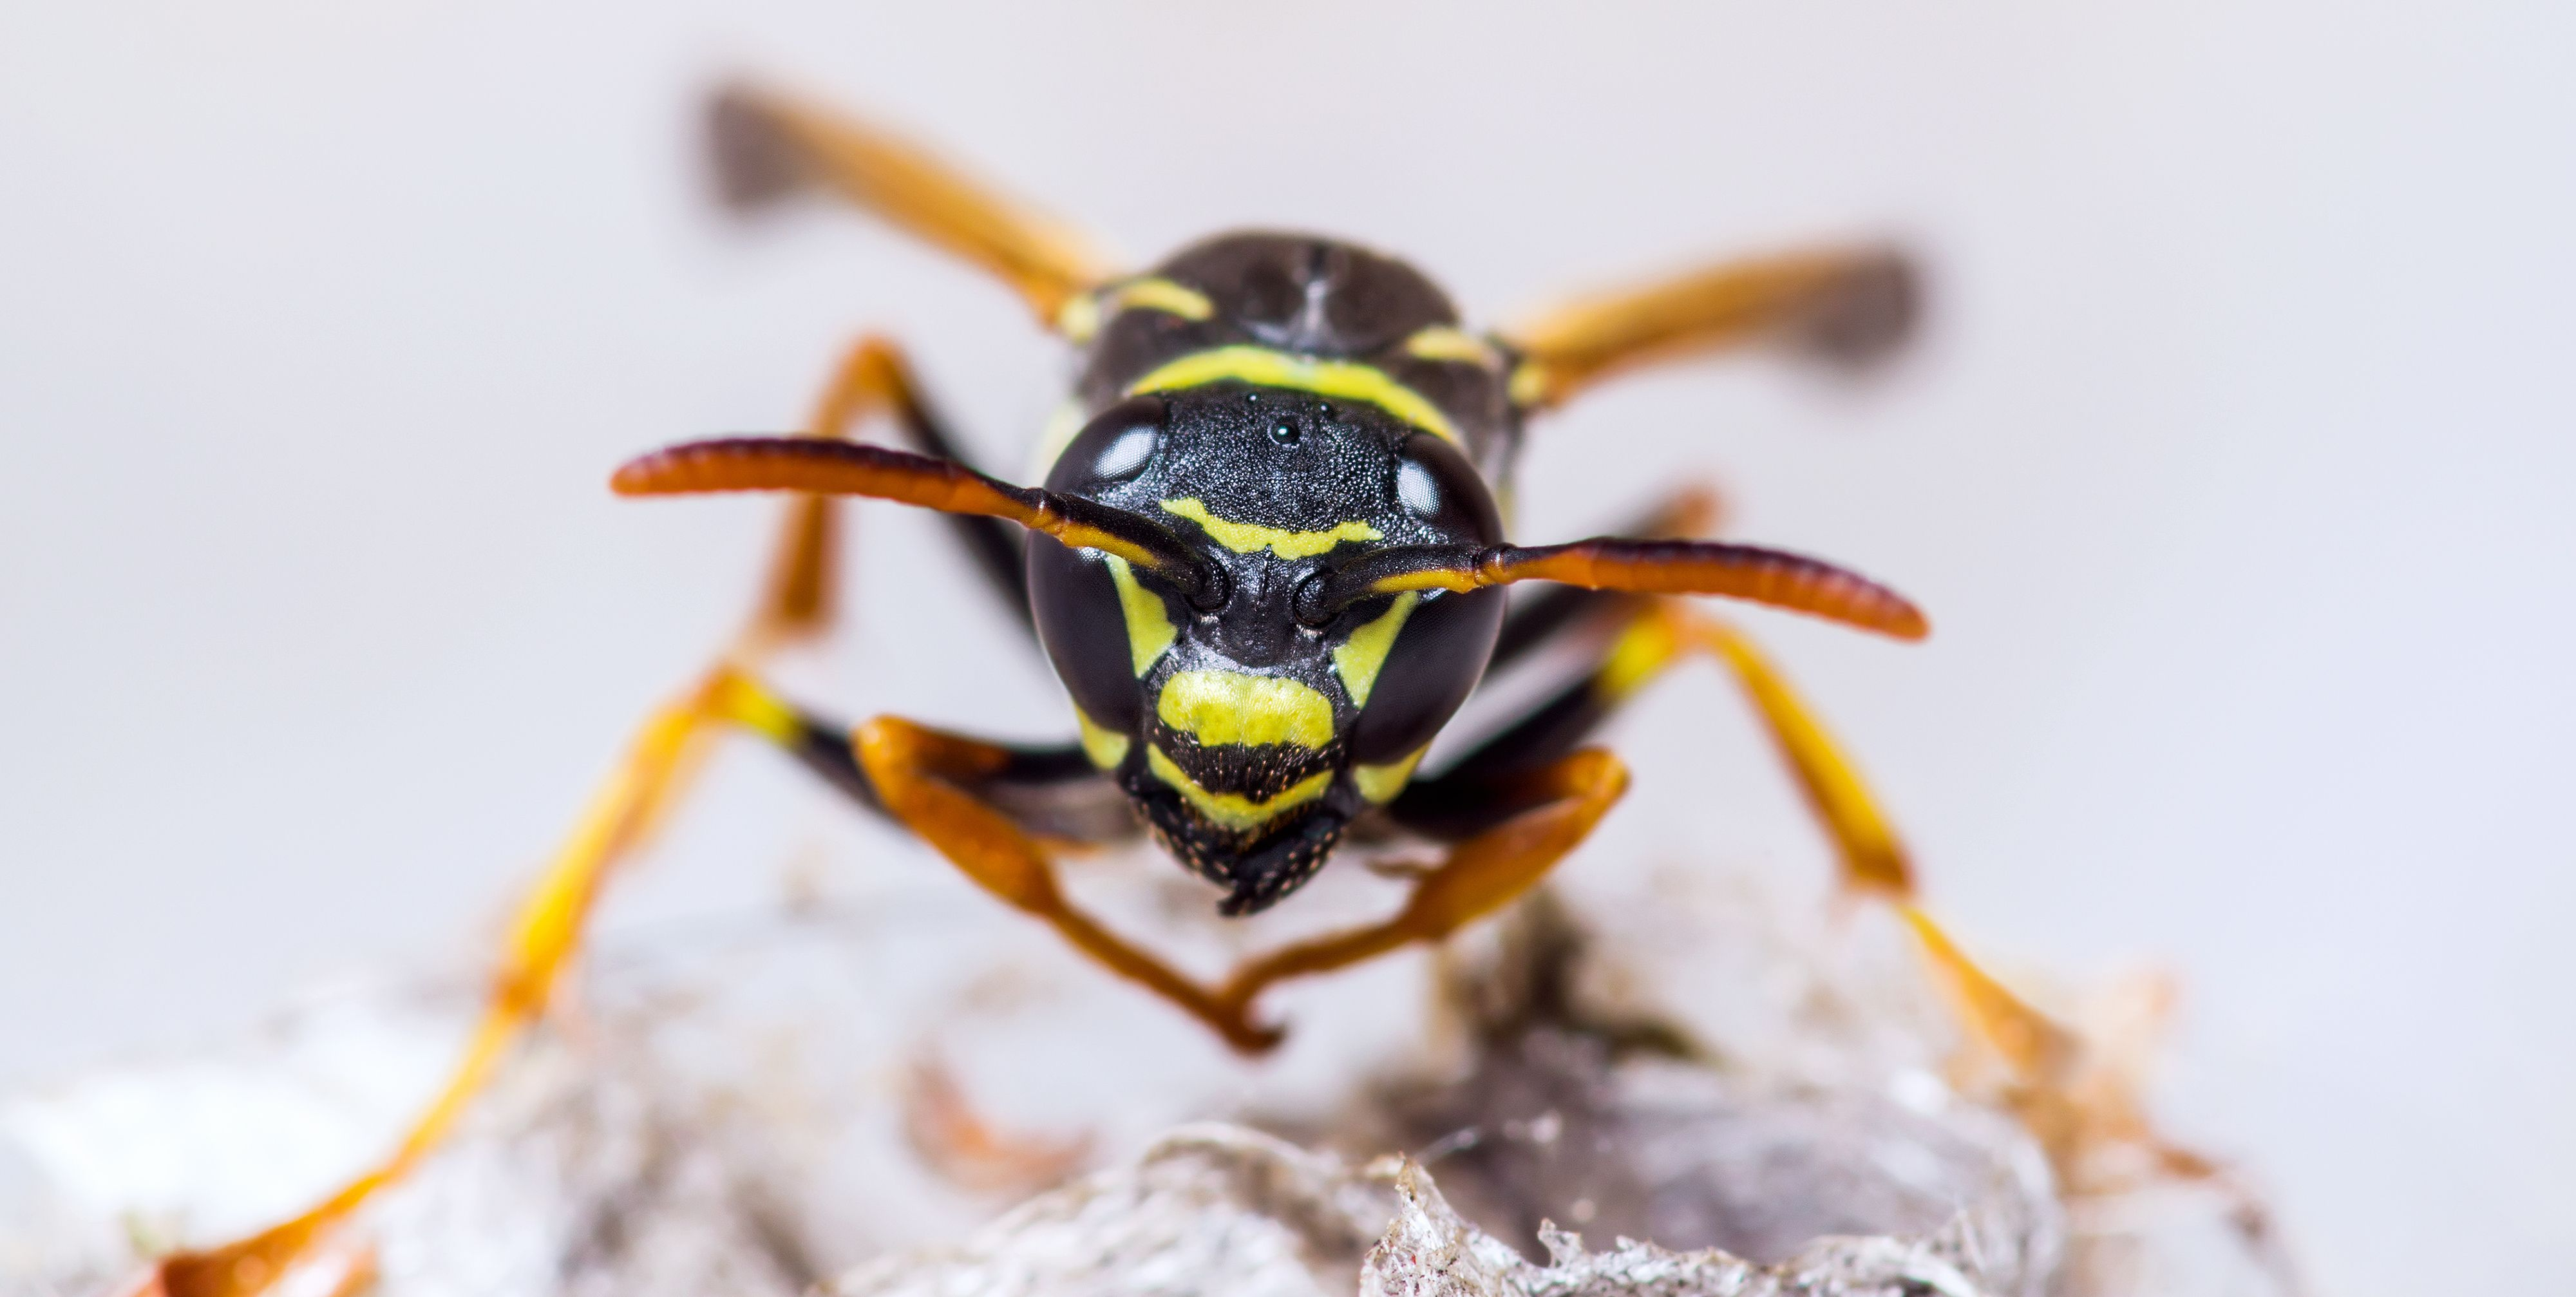 Yellowjacket Wasp Insect on Nest